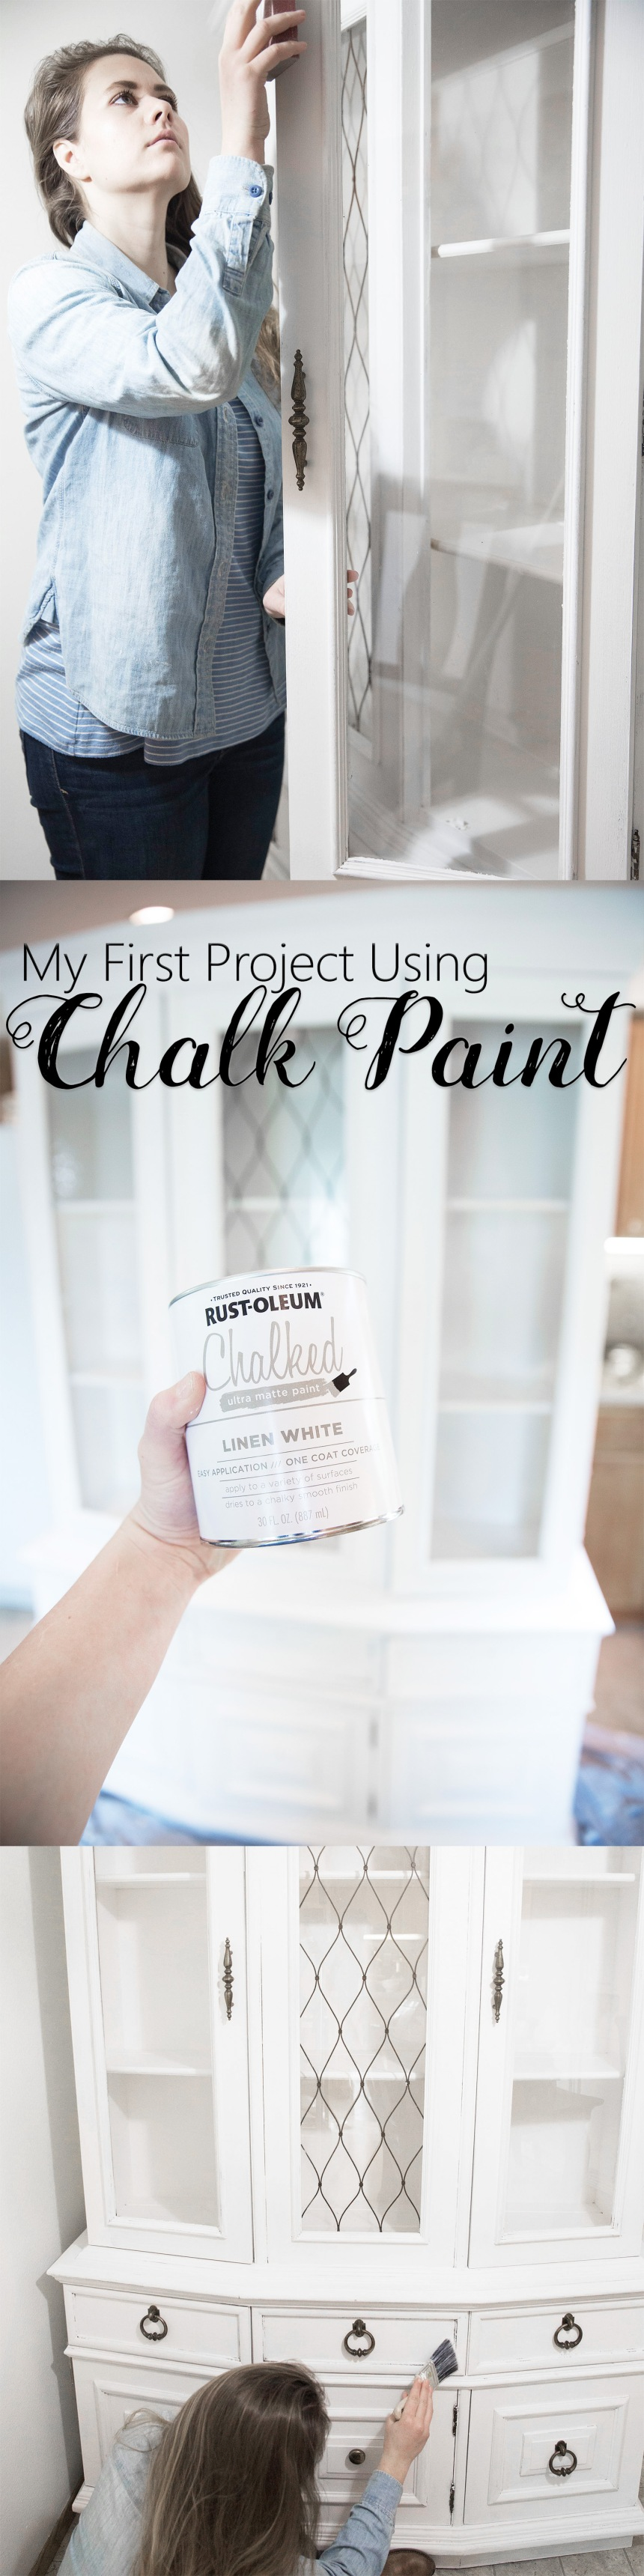 Finds and Dines Chalk Paint Pin